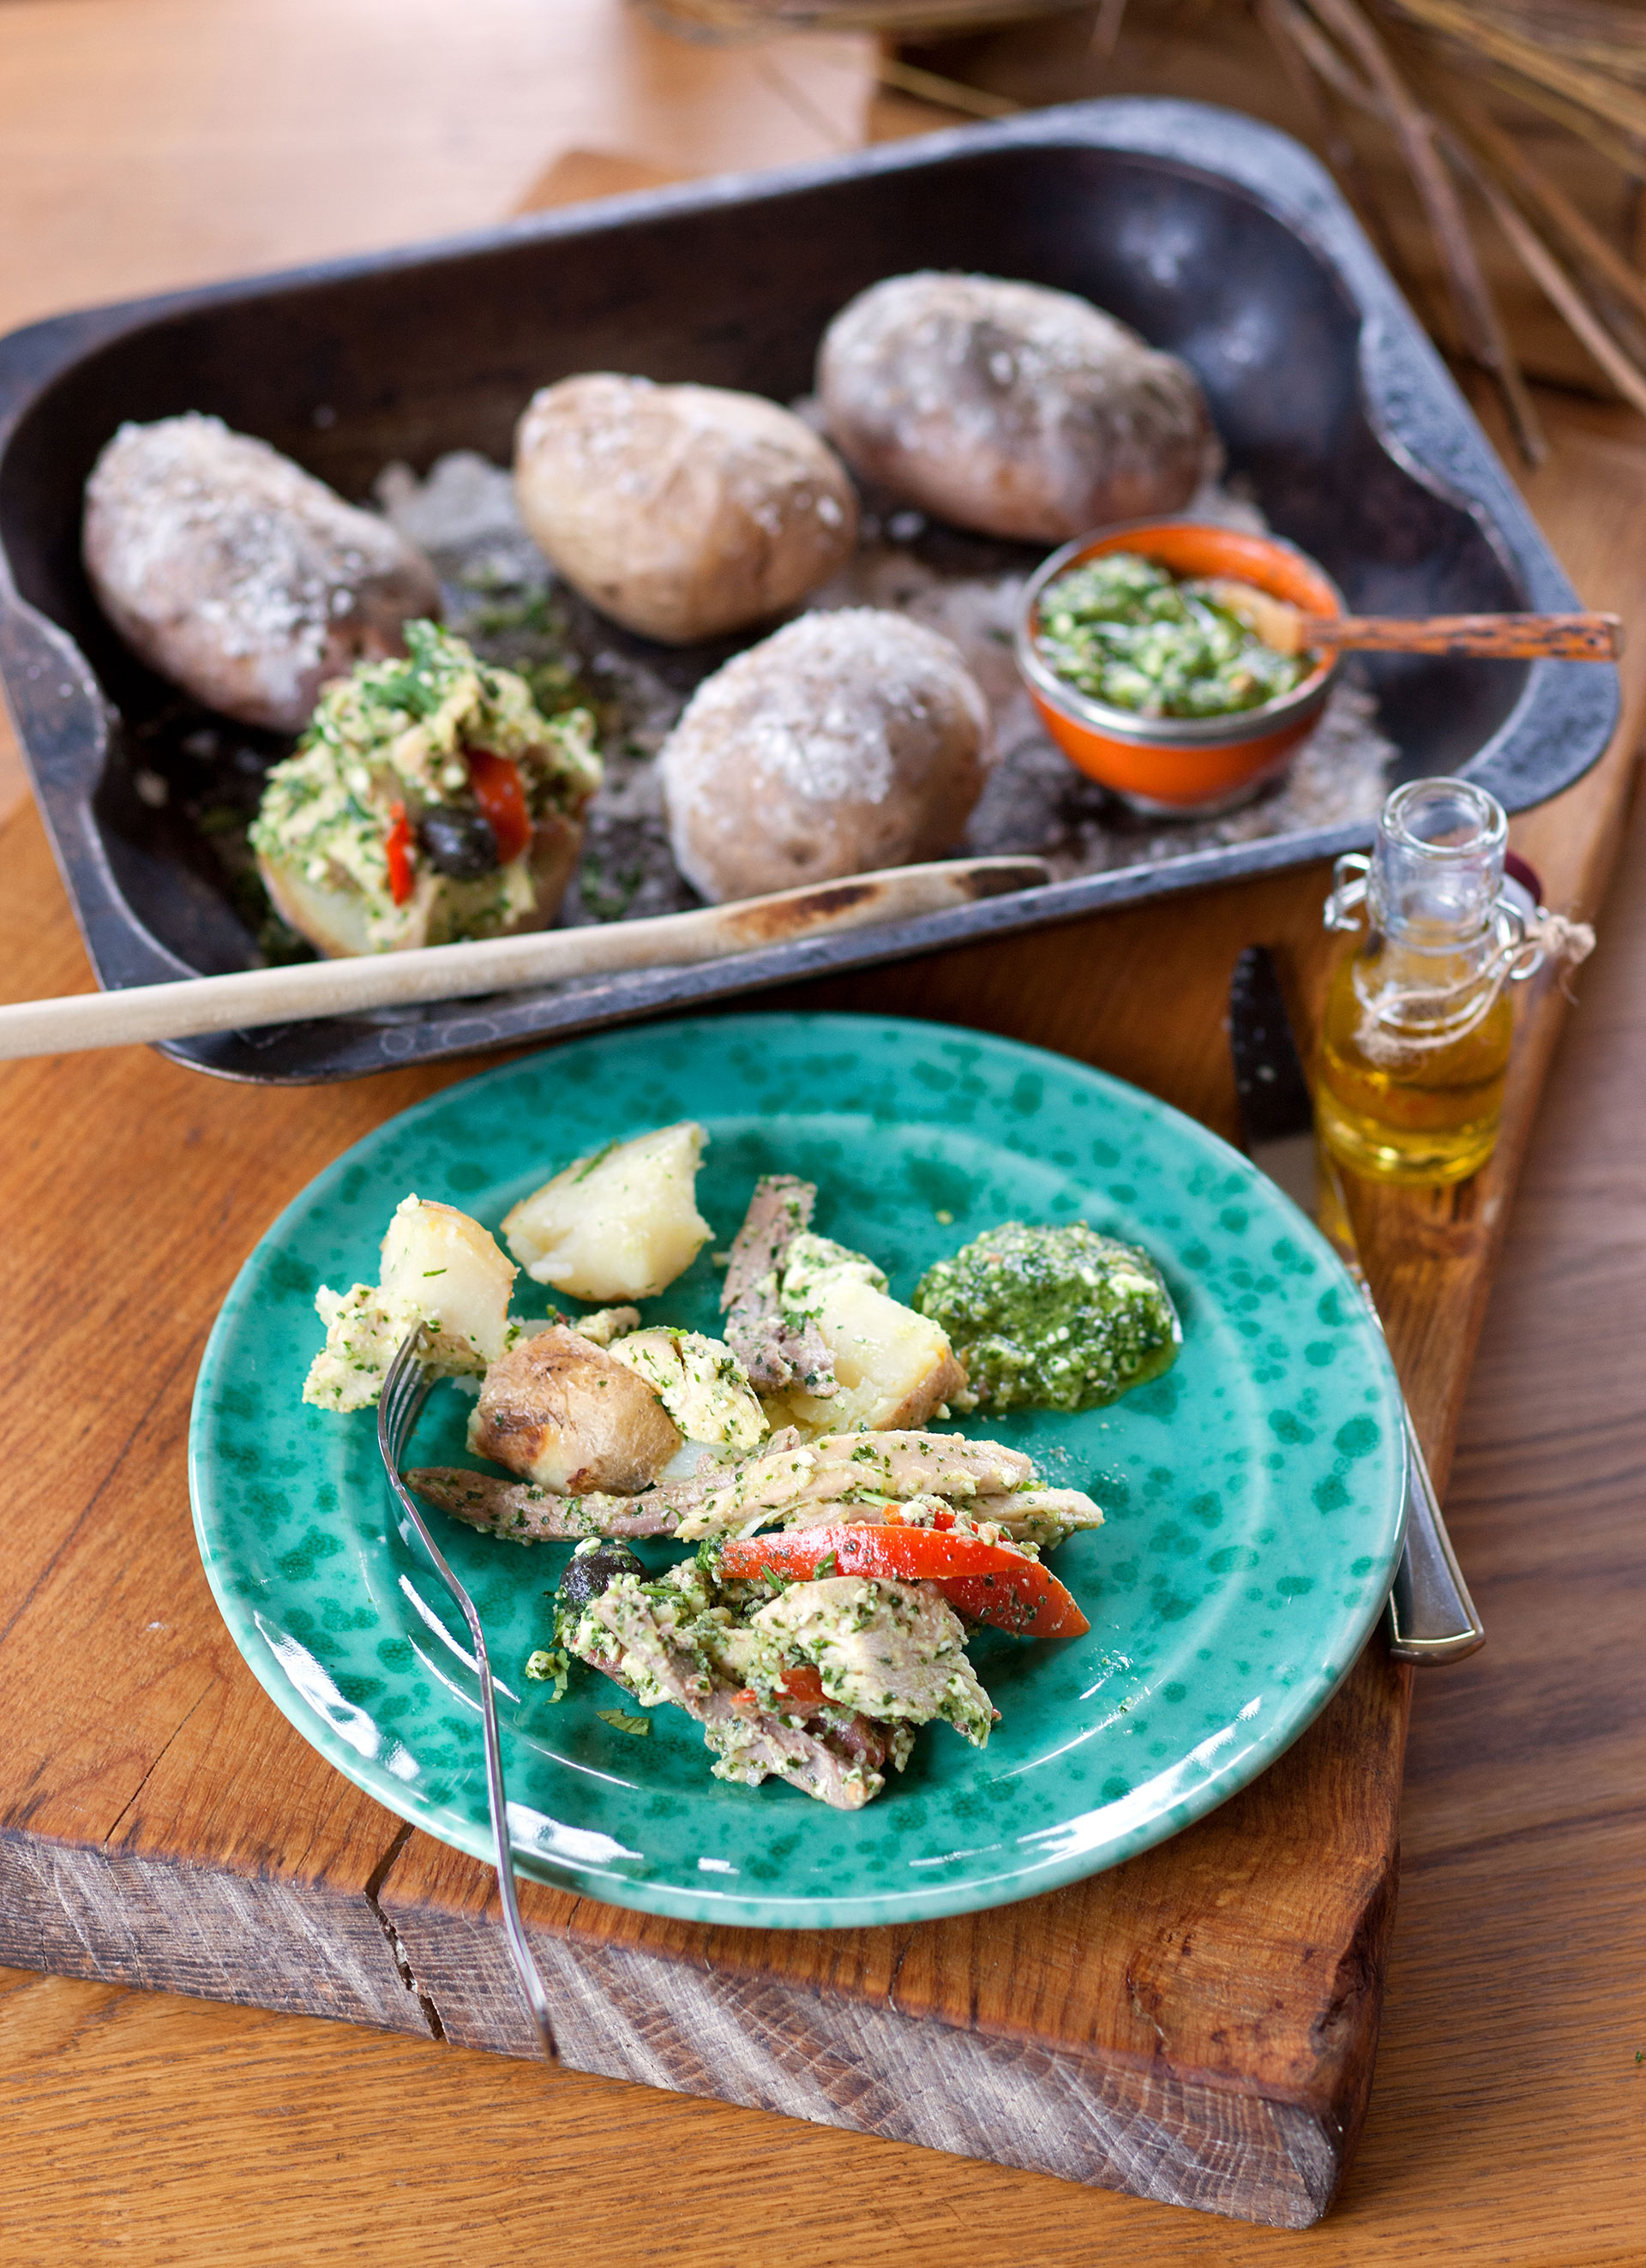 Golden Turkey with Coriander Feta Pesto in Salt Baked Potatoes